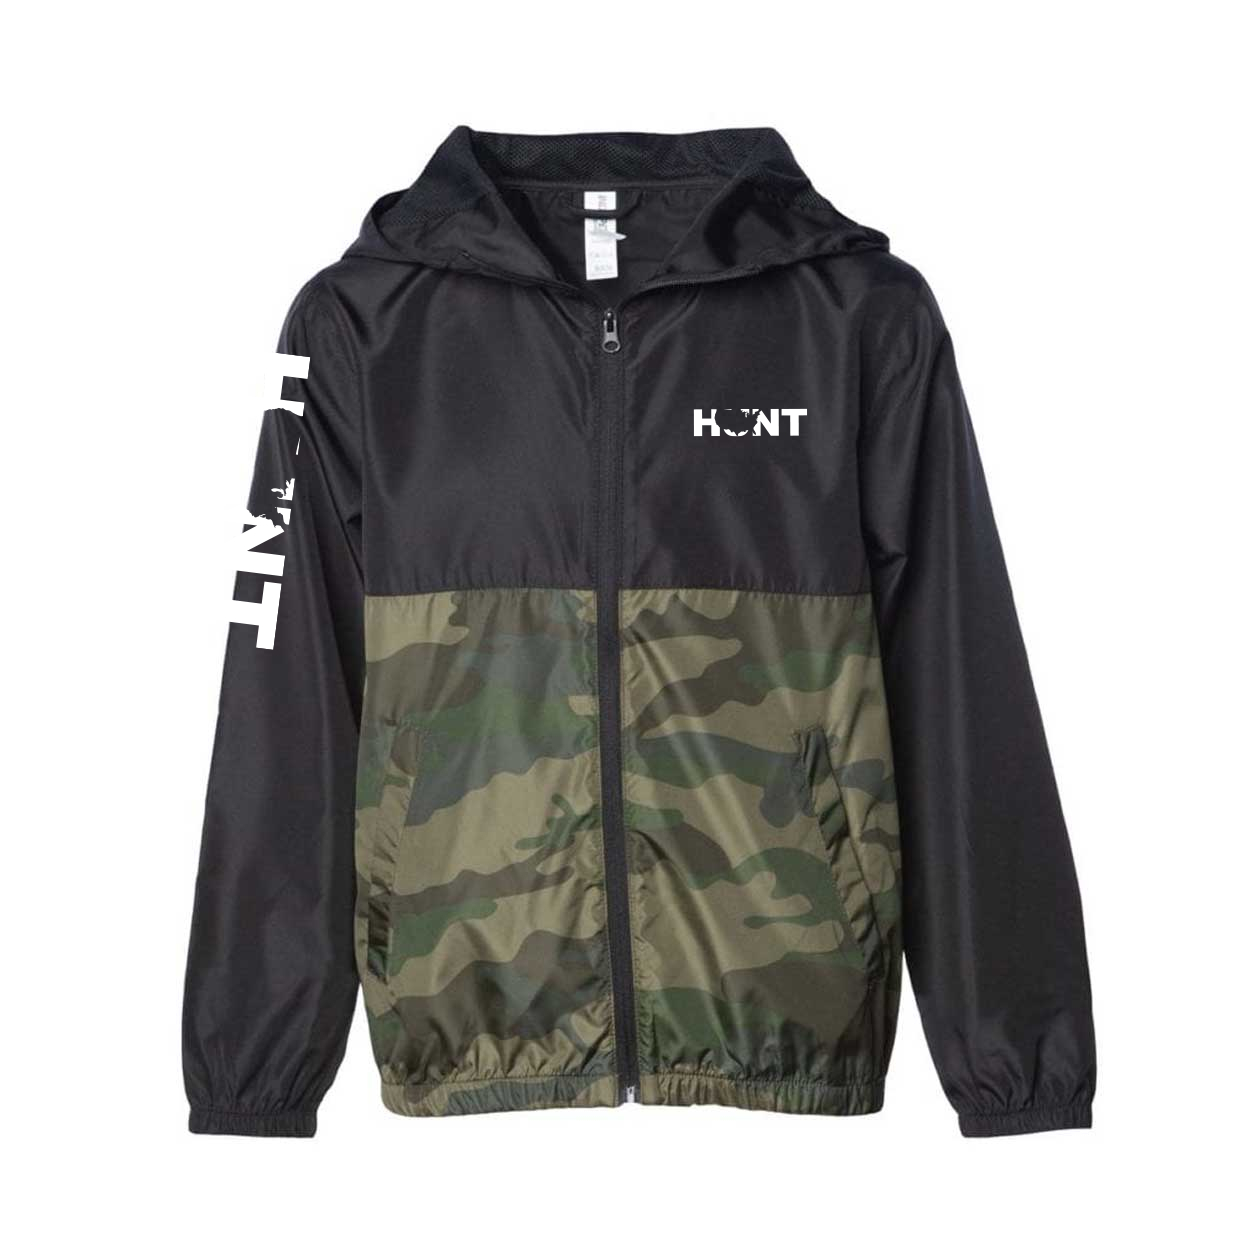 Hunt United States Classic Youth Lightweight Windbreaker Black/Forest Camo (White Logo)